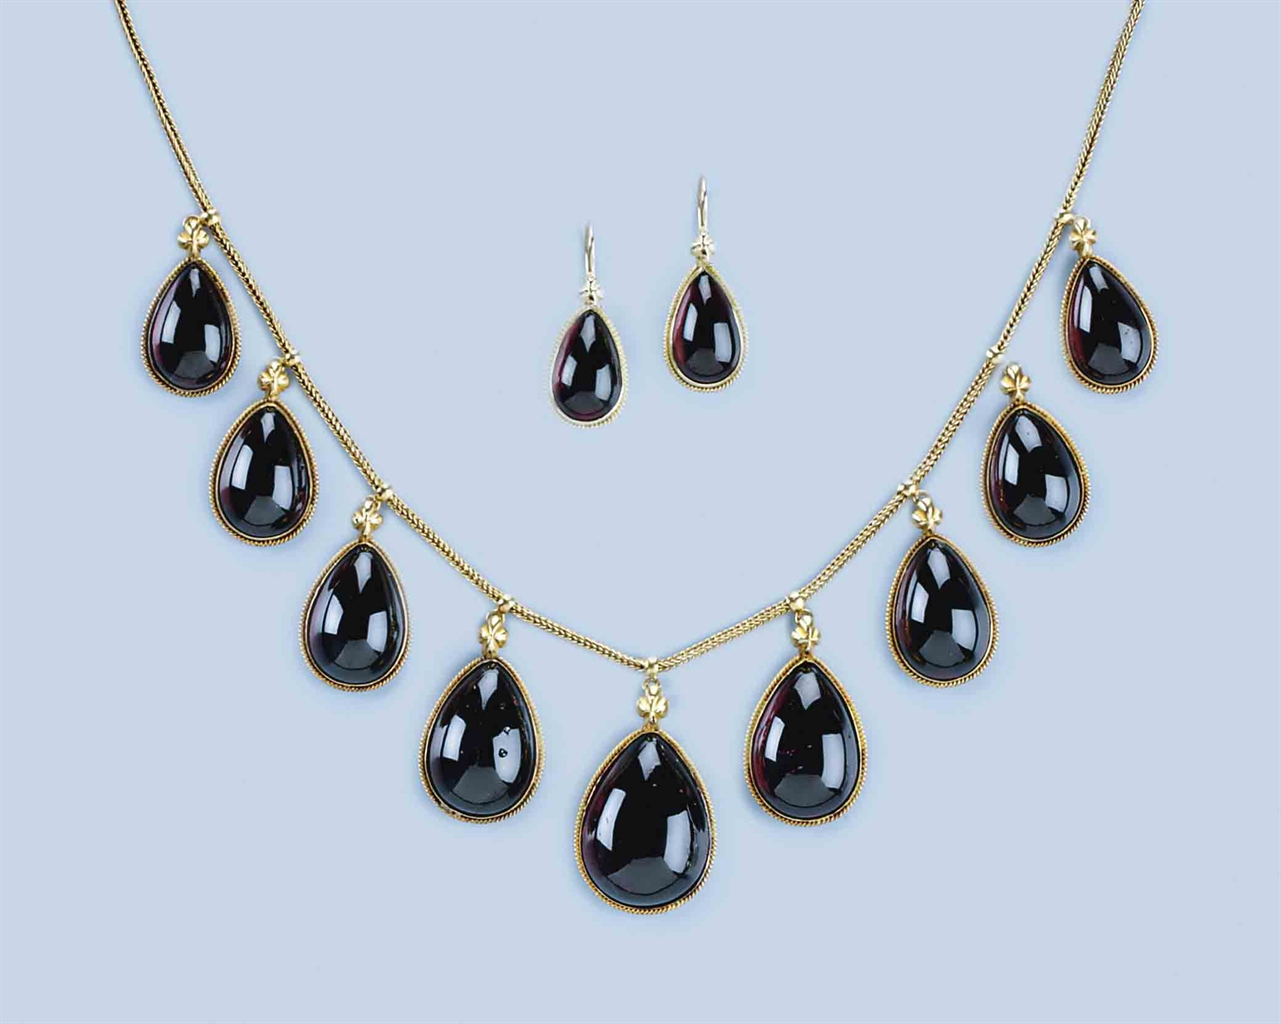 An Antique Garnet Necklace And Matching Earrings Jewelry